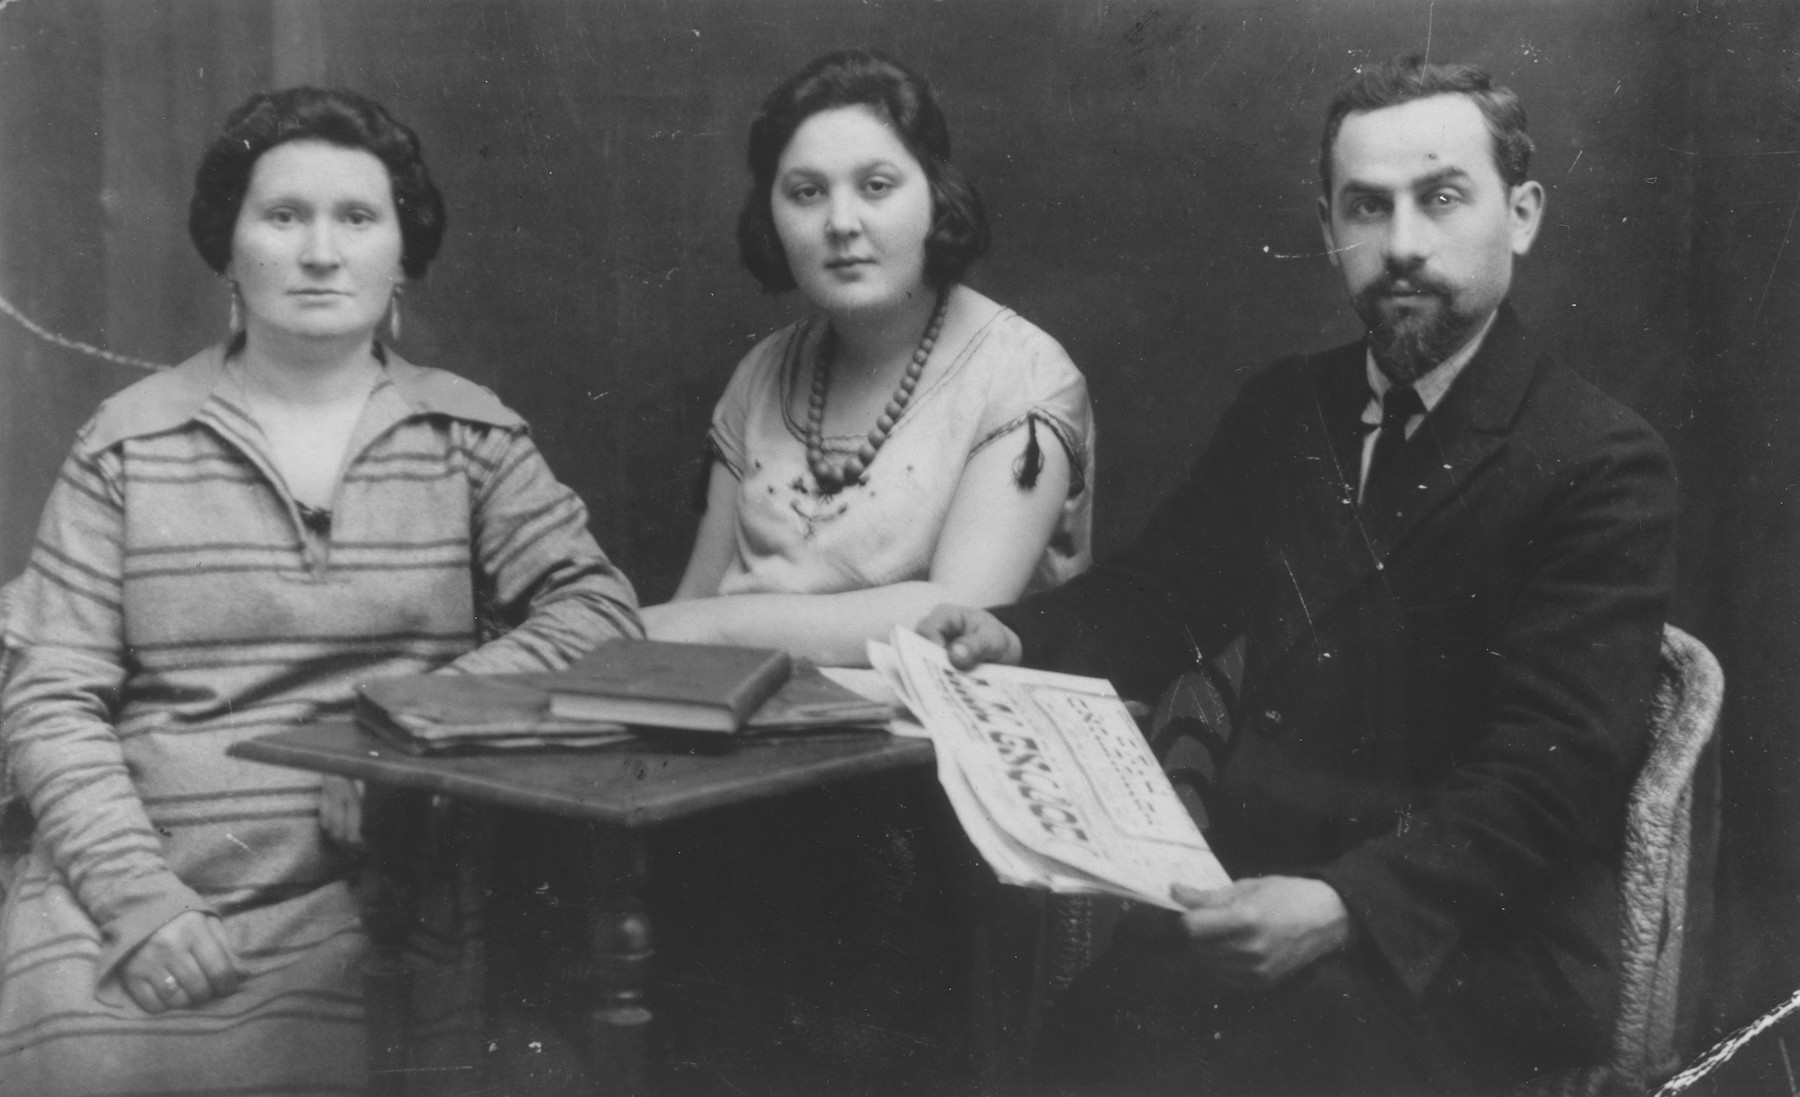 Studio portrait of the Ajzner family.  Pictured from left to right are Chaja Ester, Malka Bella and Noah Ajzner.